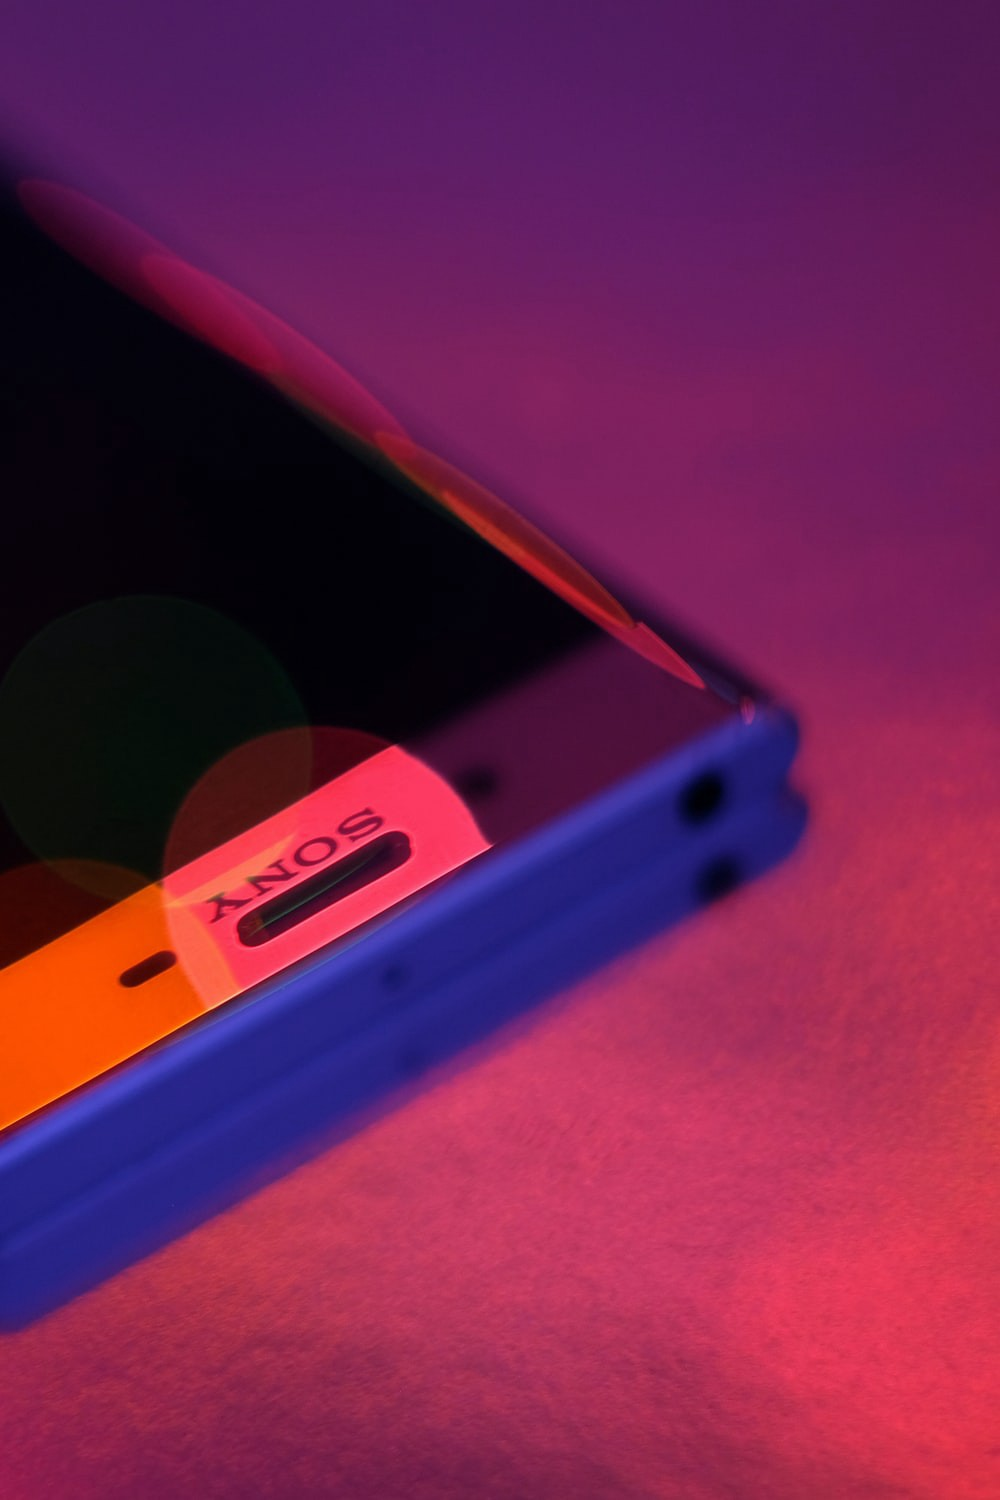 Blue Sony smartphone